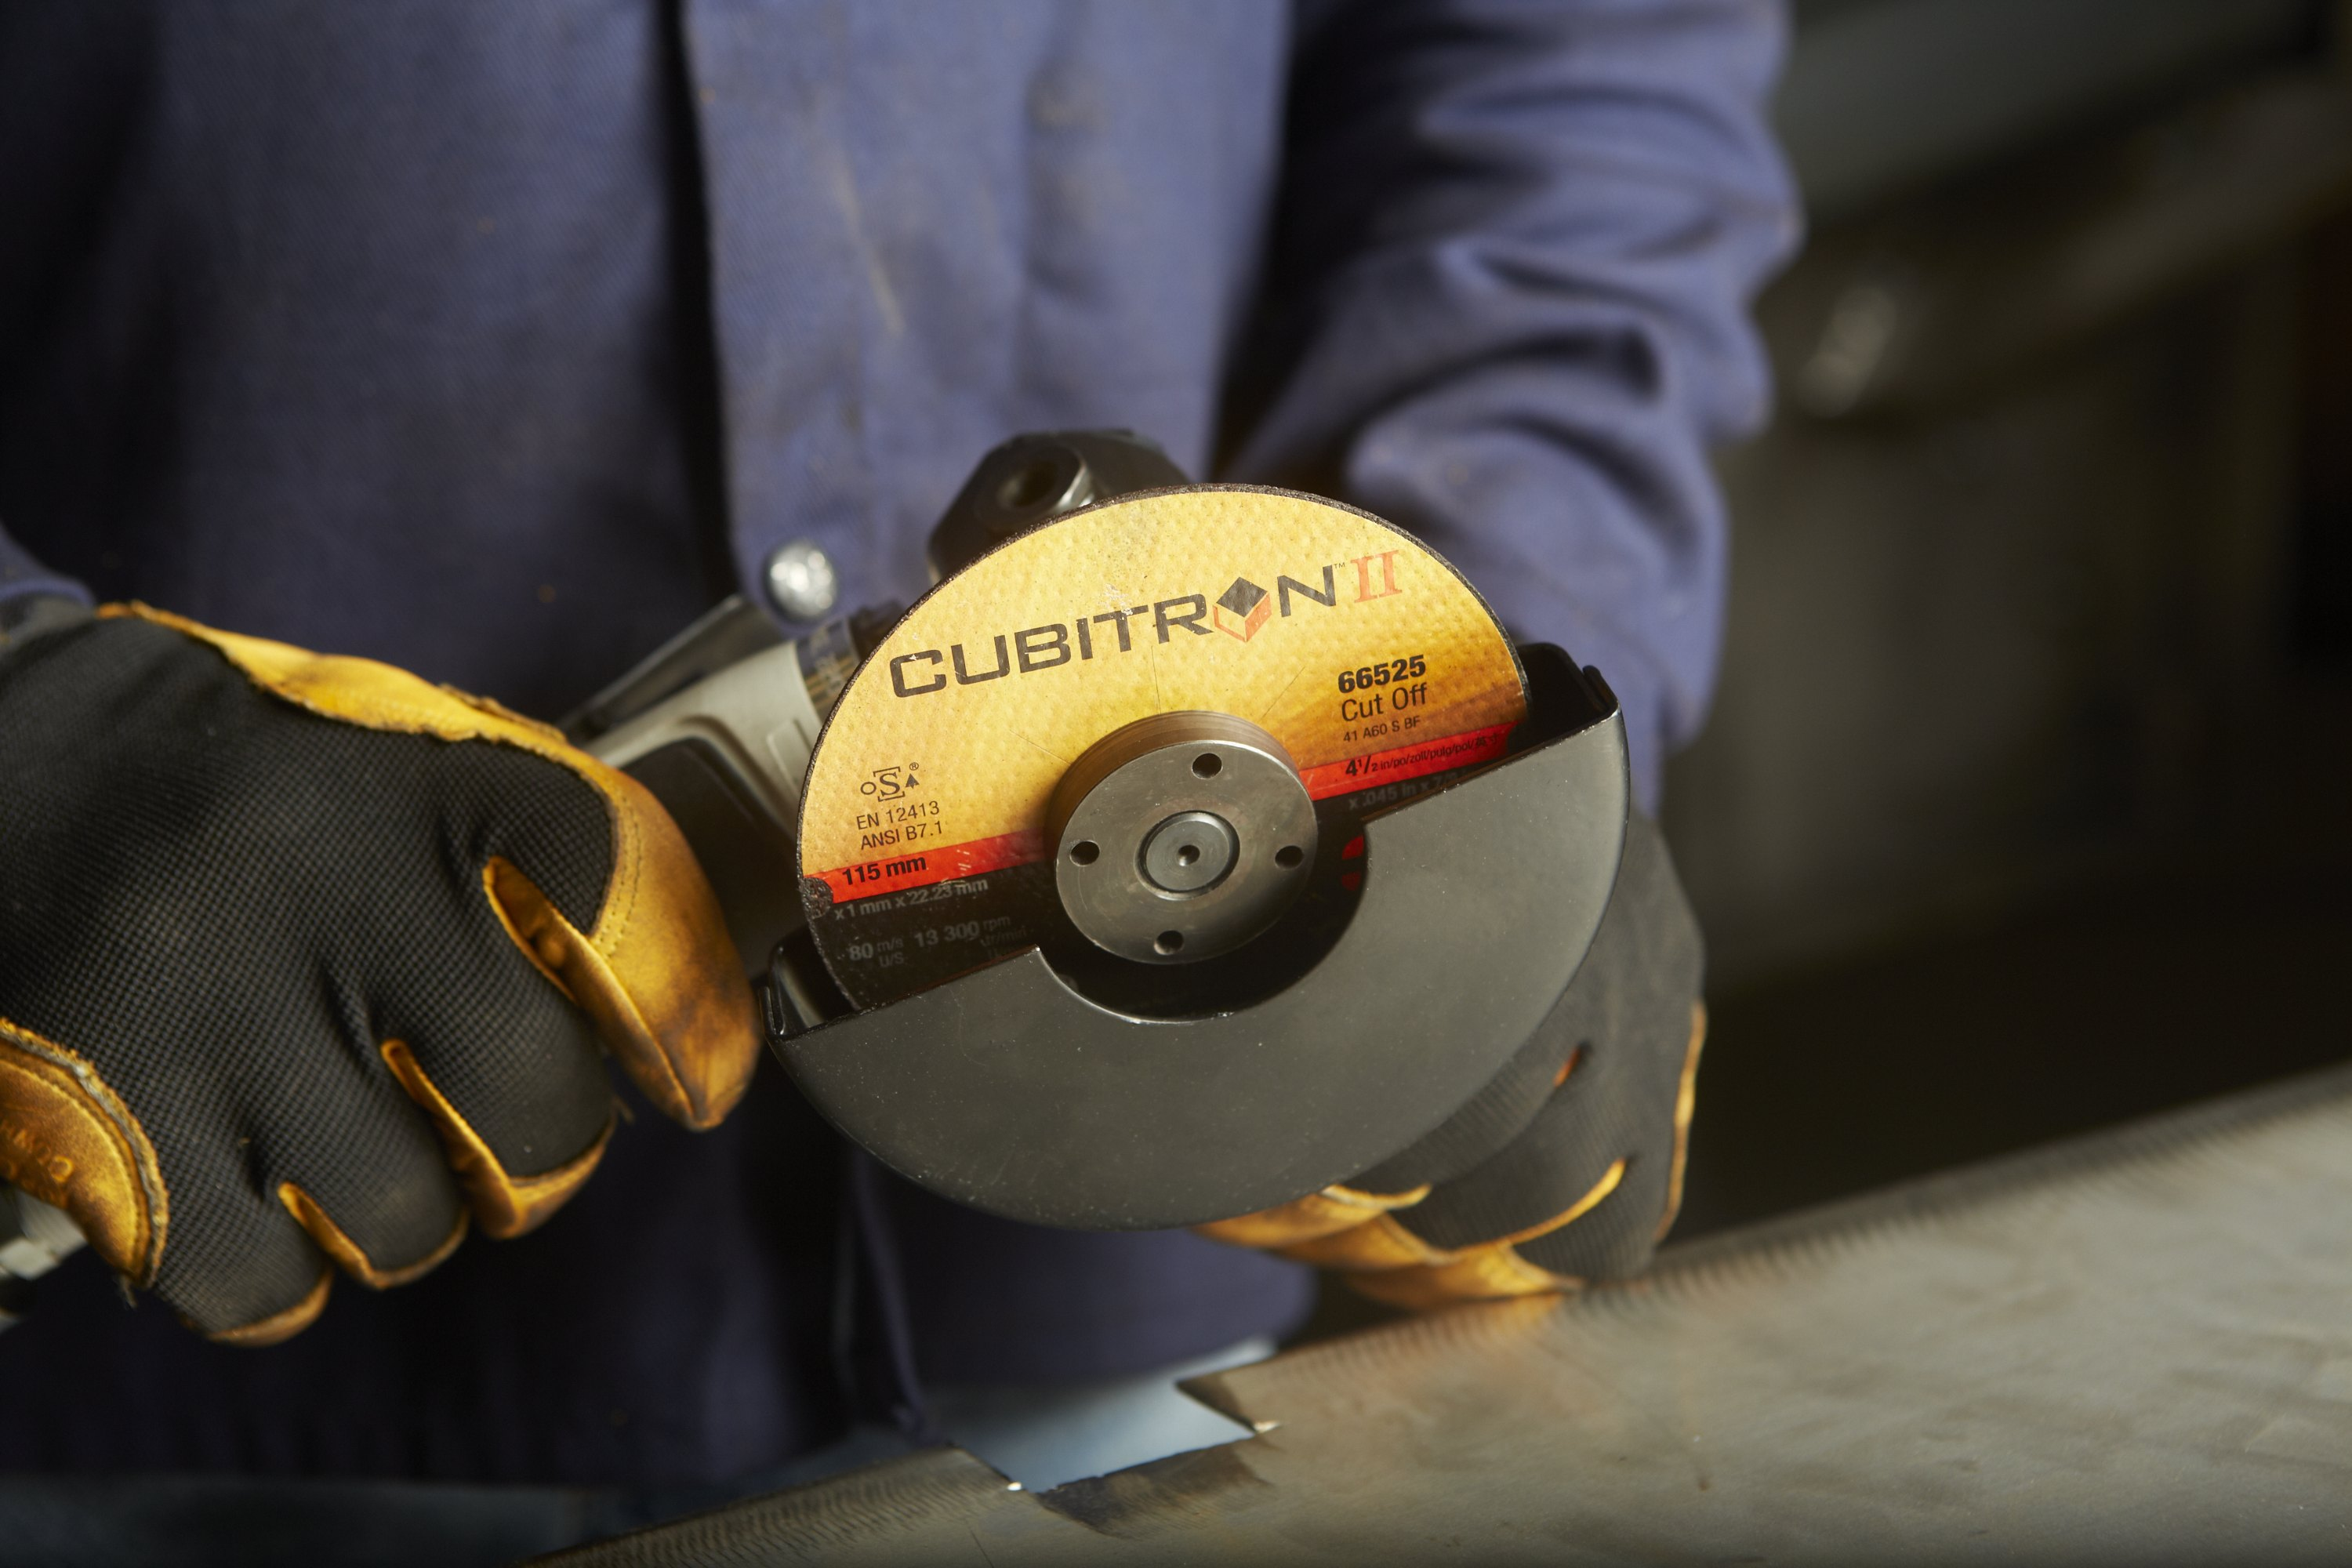 Cubitron II abrasives use precision-shaped grain technology to cut faster, stay sharper longer and require less pressure than conventional grinding and cut-off wheels. These abrasives help reduce operator fatigue and increase productivity.(Click on photo to enlarge it)